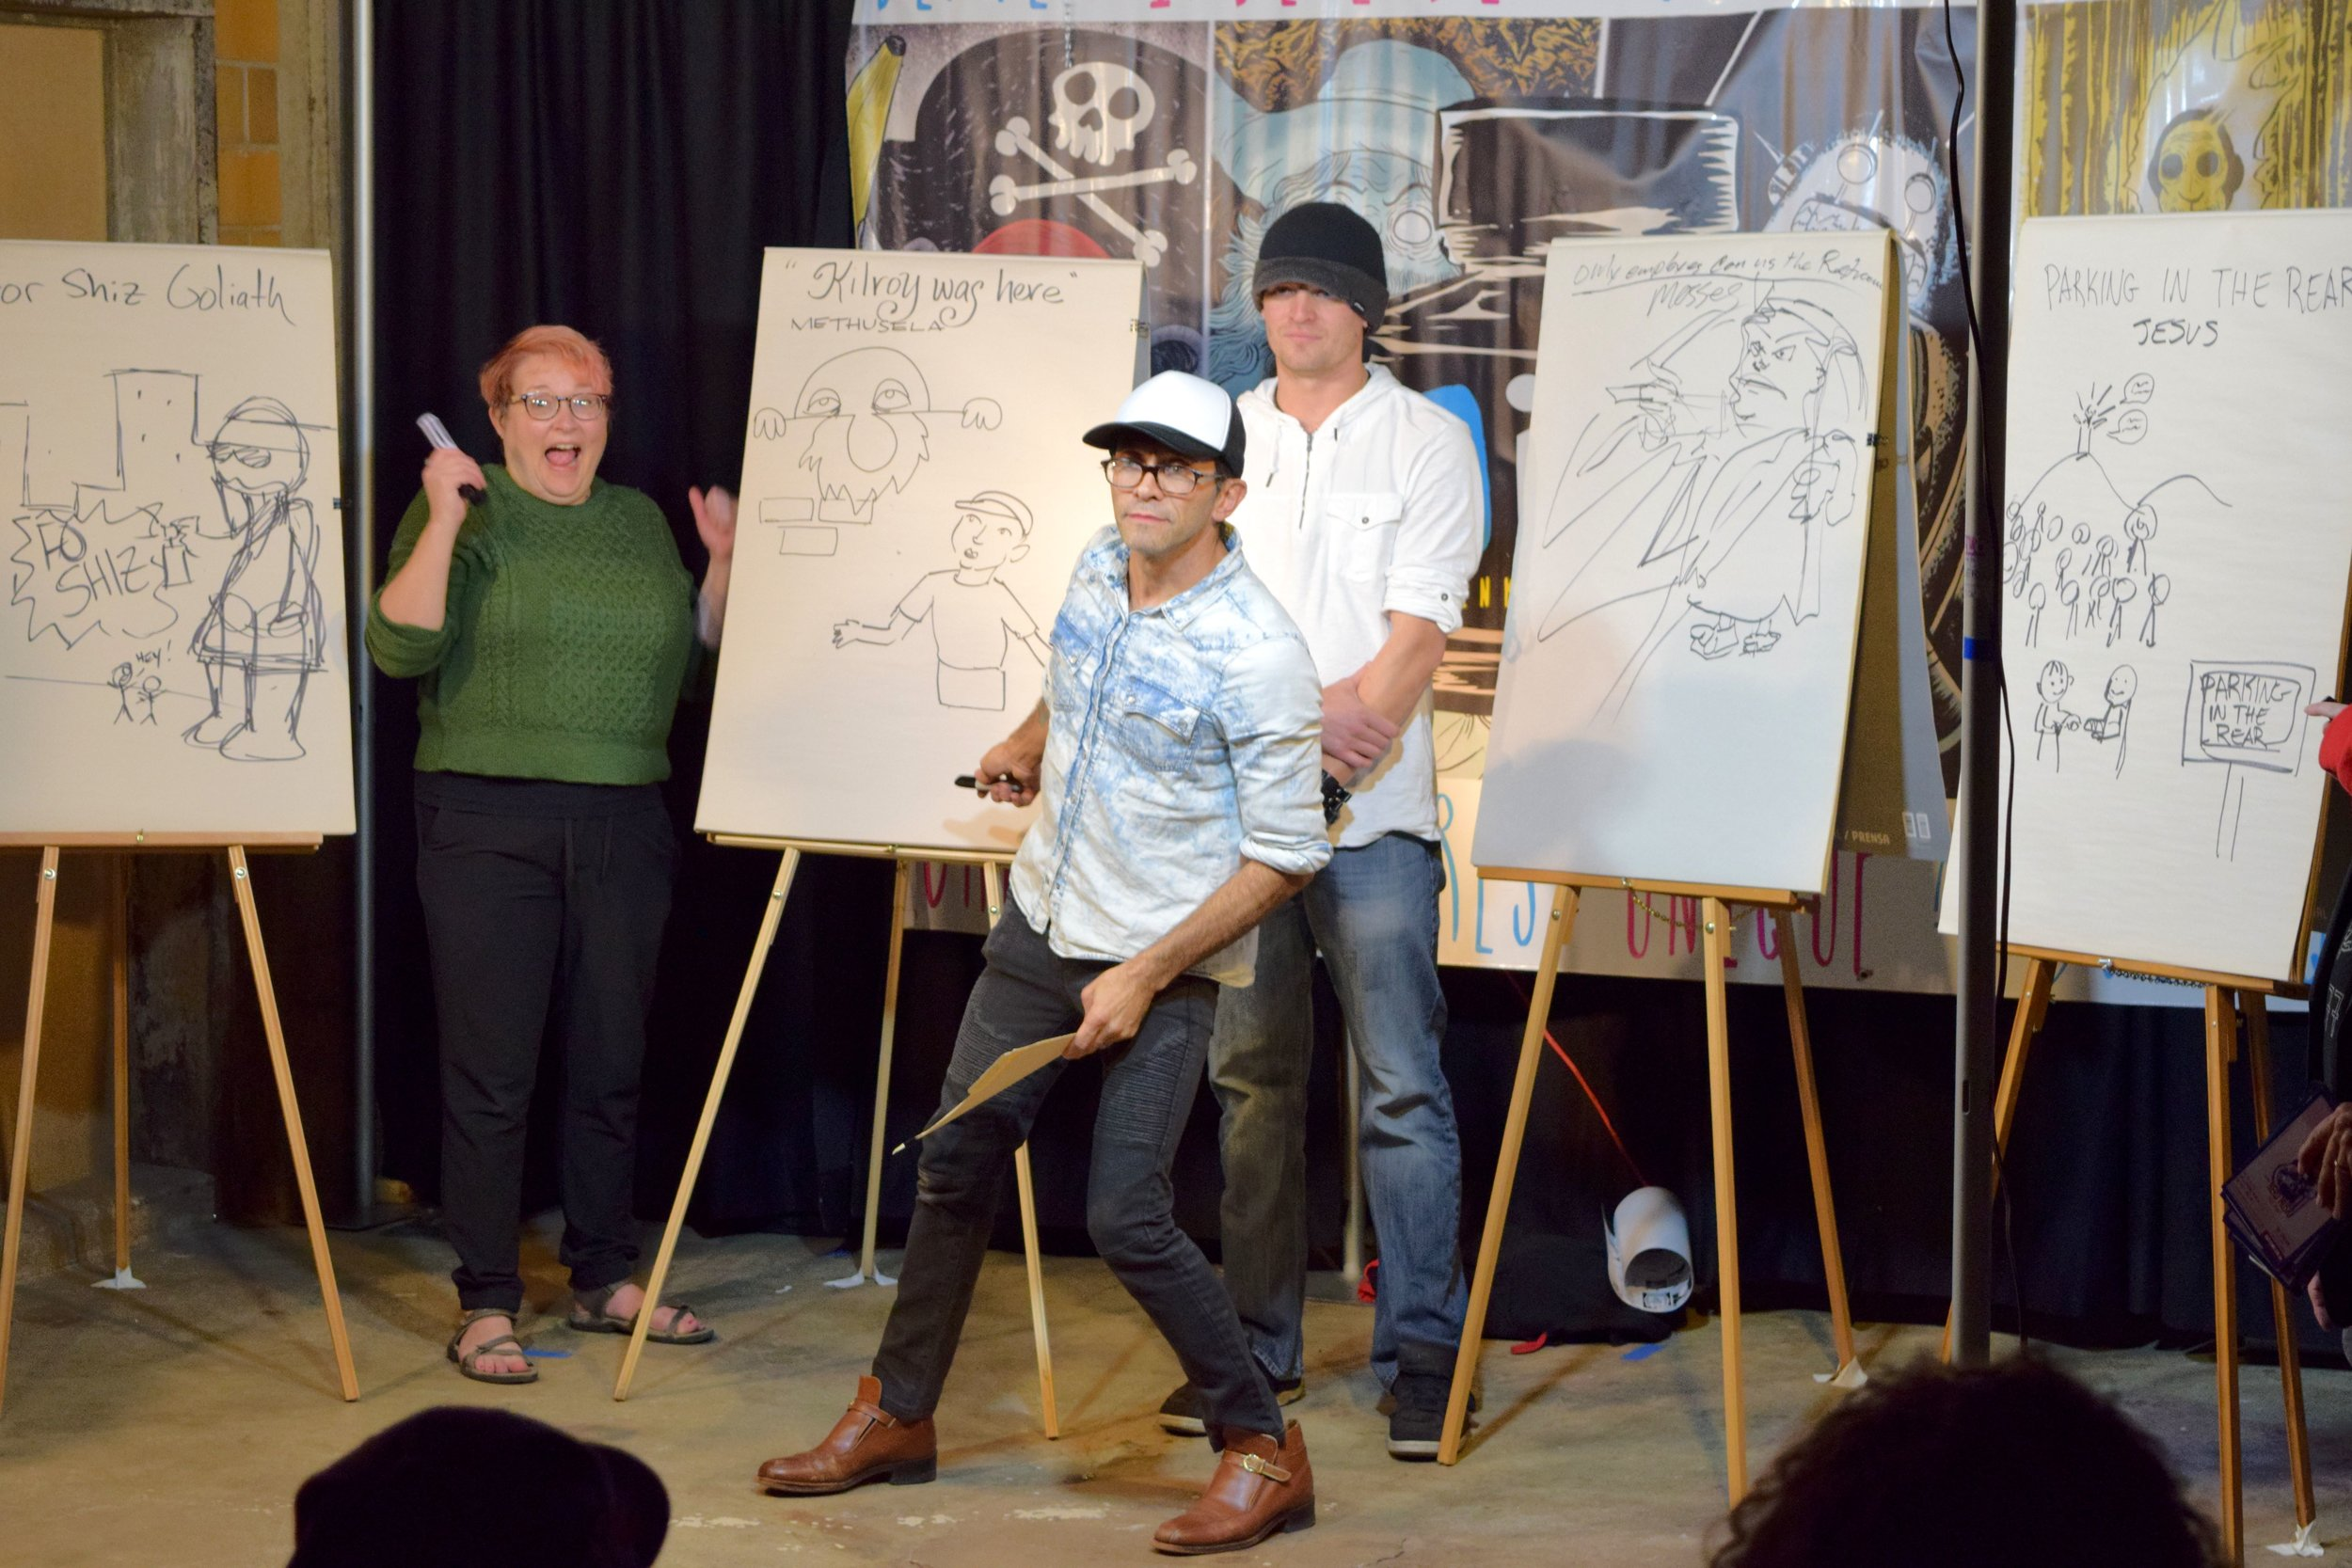 A Night At the DINK Colorado Showcase 2, TALA (Take Art Leave Art), and Draw-Off   Written by Neil Greenaway